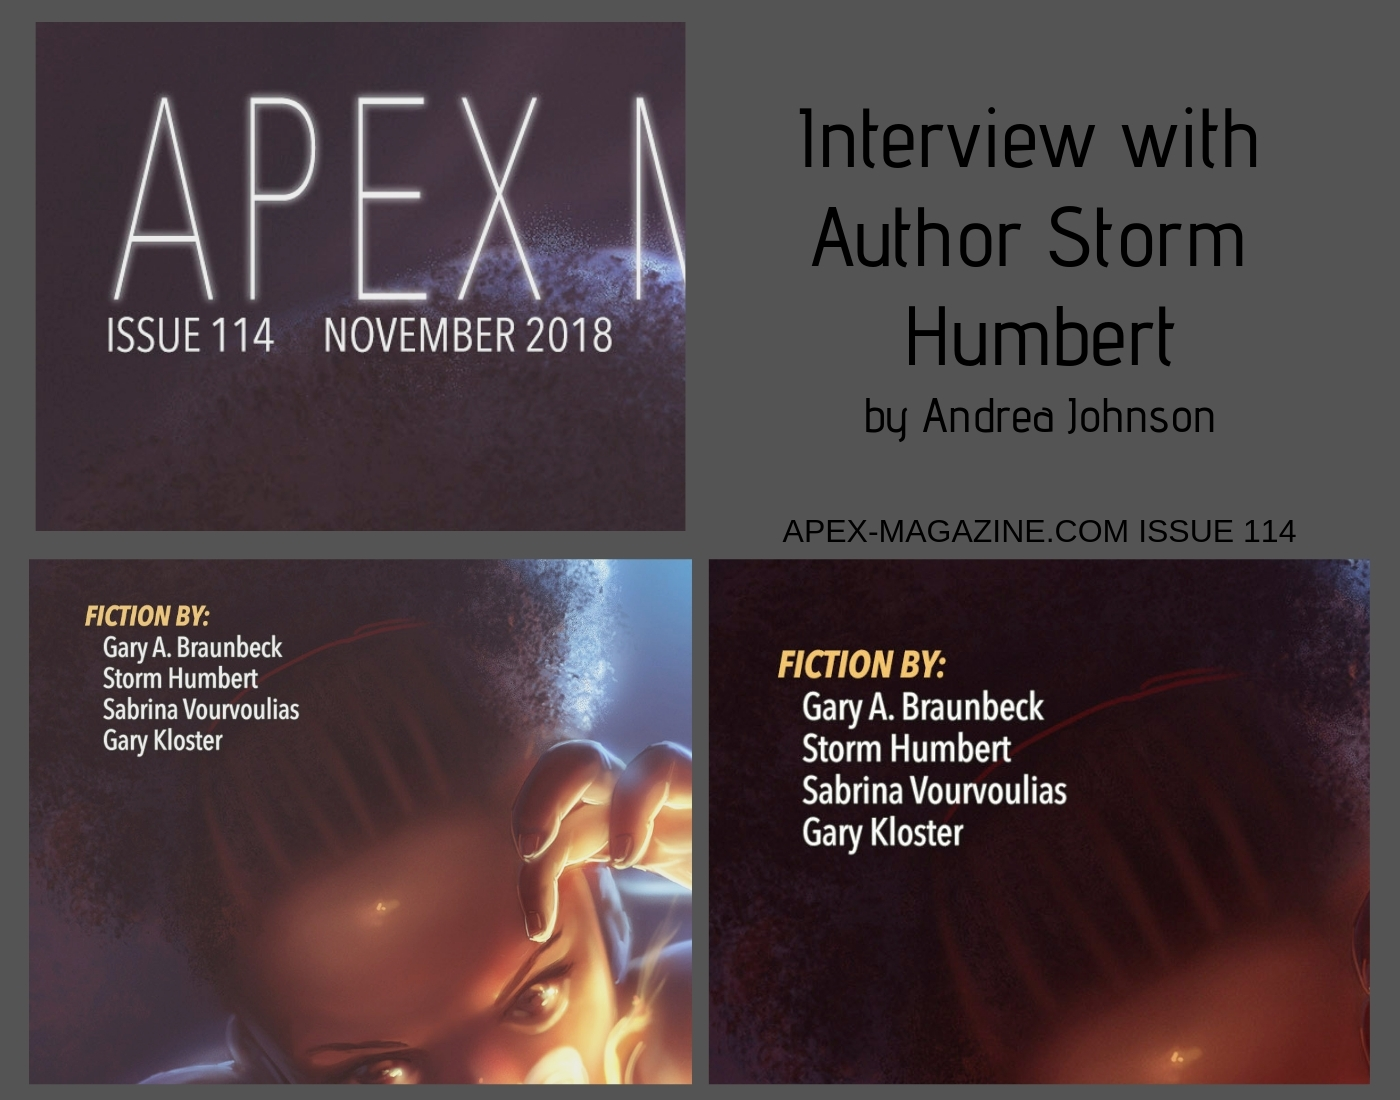 Interview with Author Storm Humbert